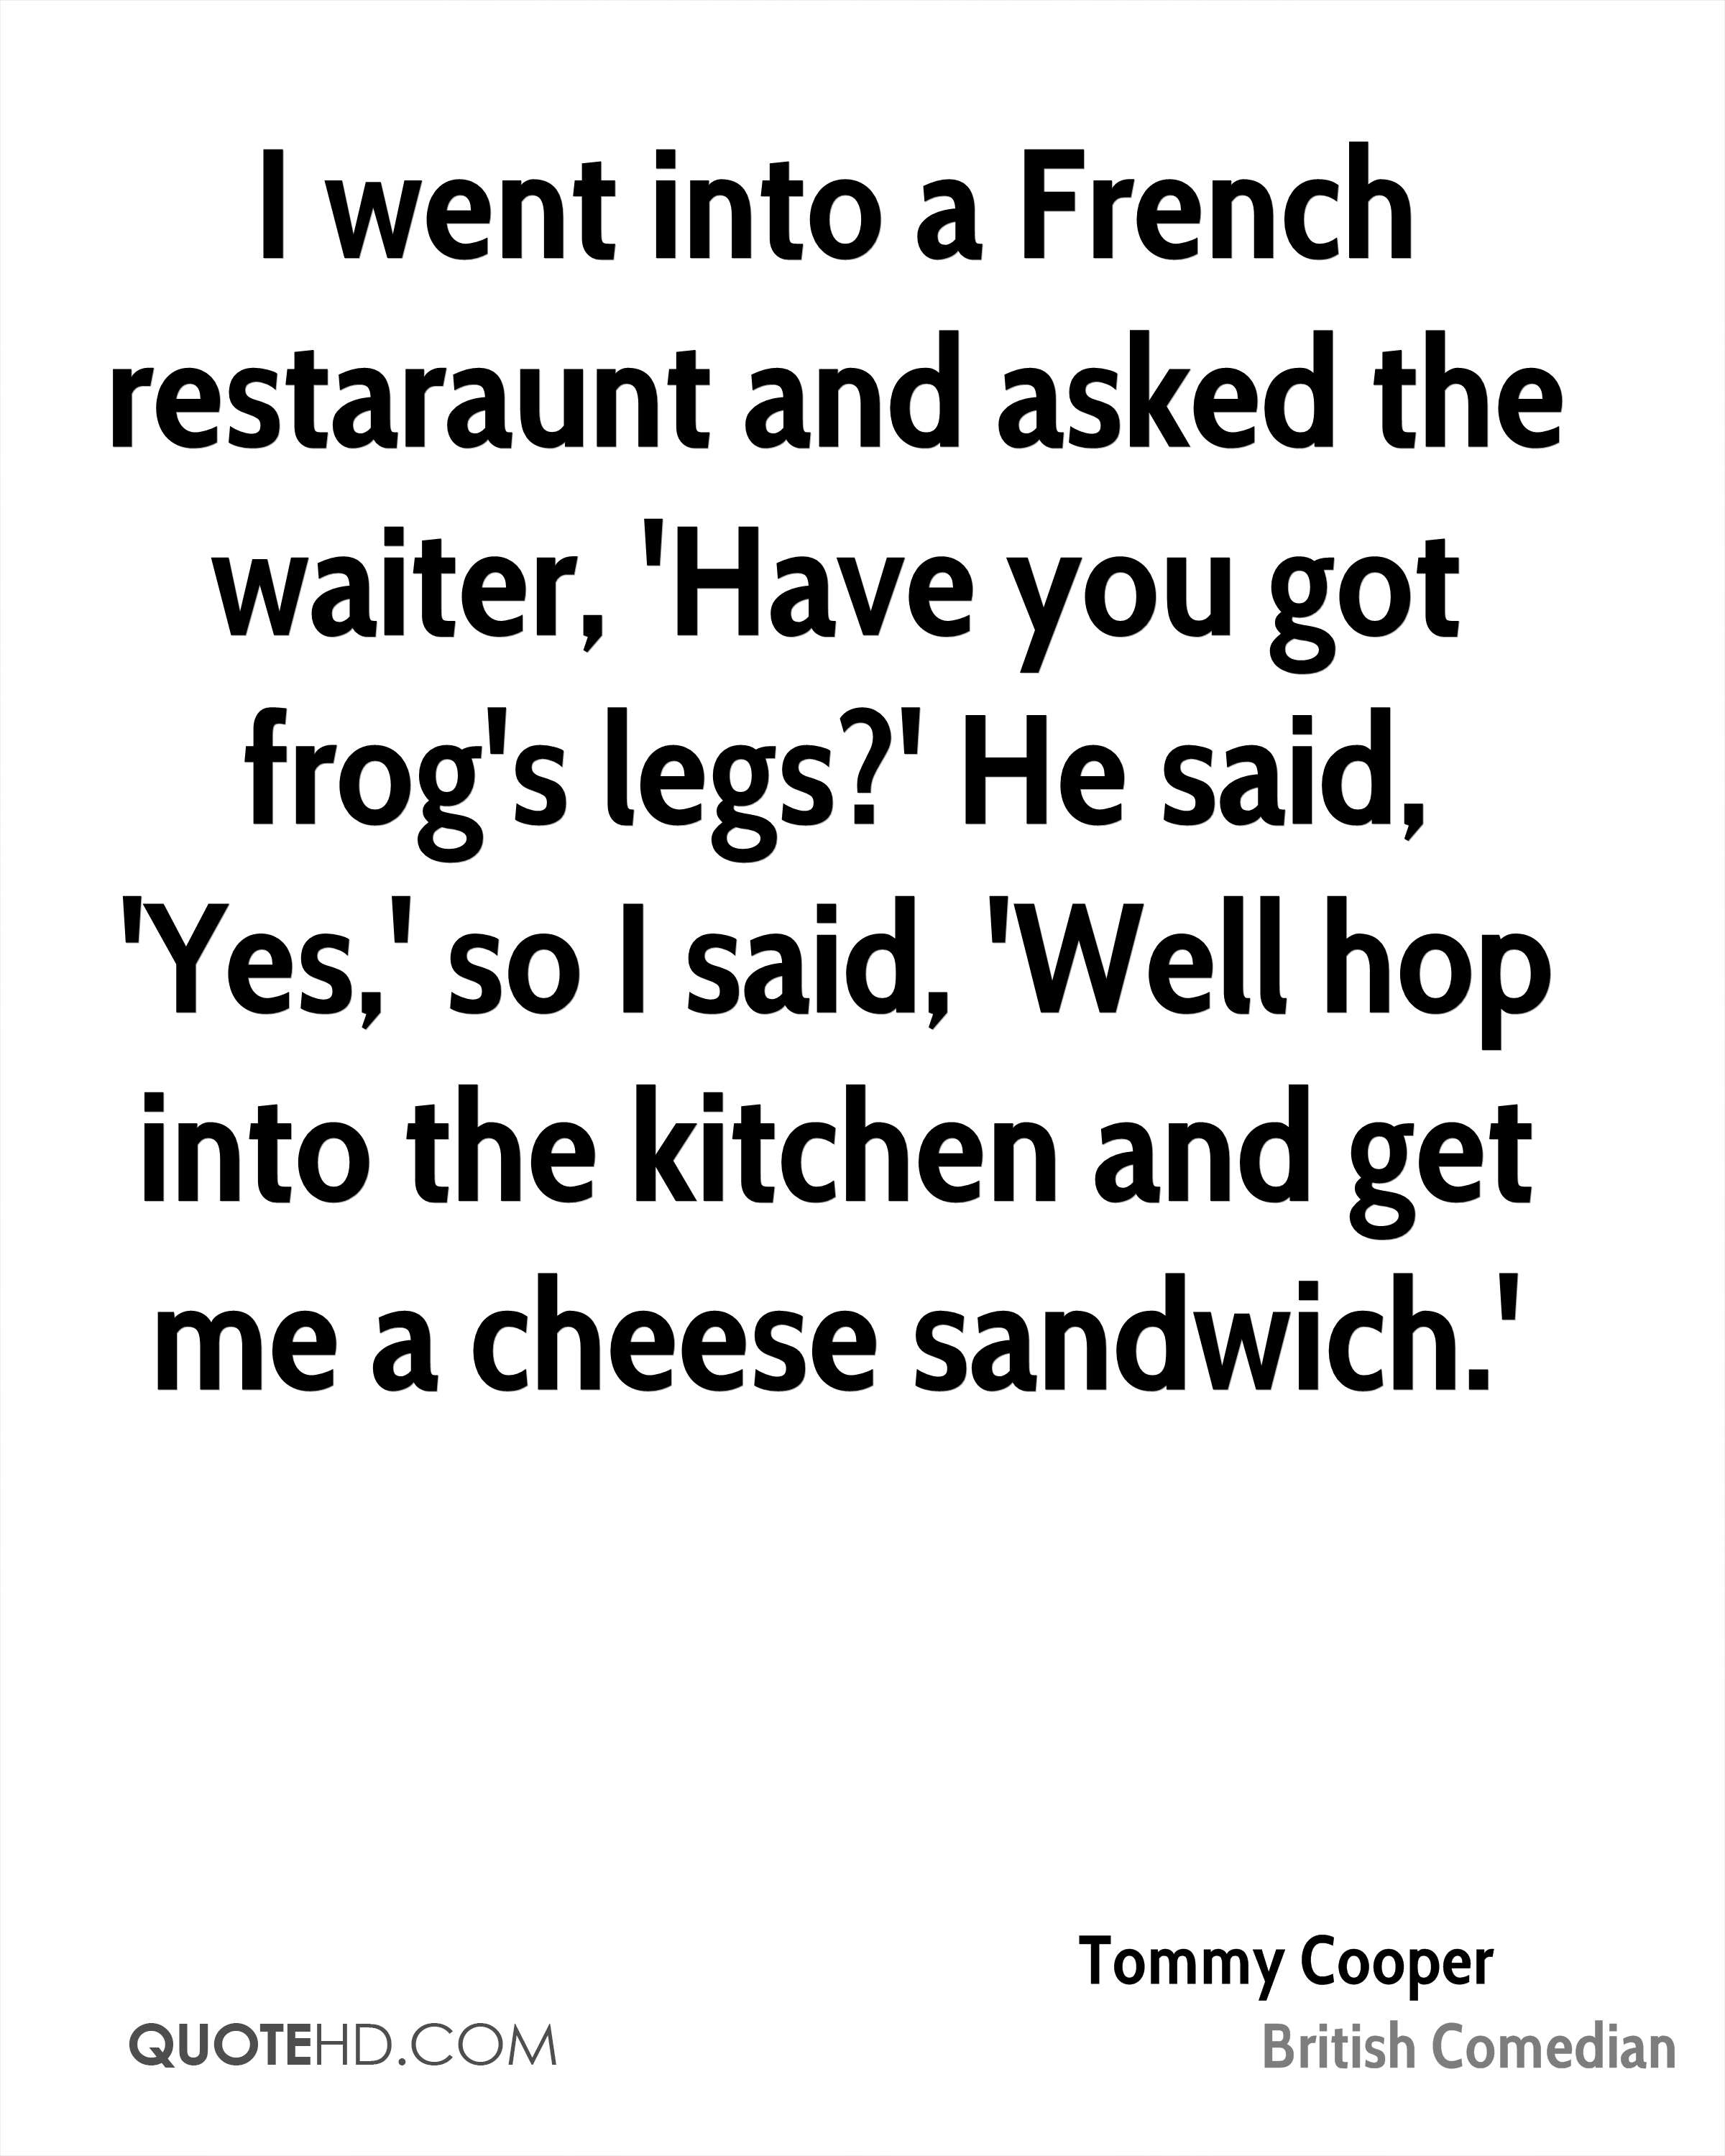 I went into a French restaraunt and asked the waiter, 'Have you got frog's legs?' He said, 'Yes,' so I said, 'Well hop into the kitchen and get me a cheese sandwich.'